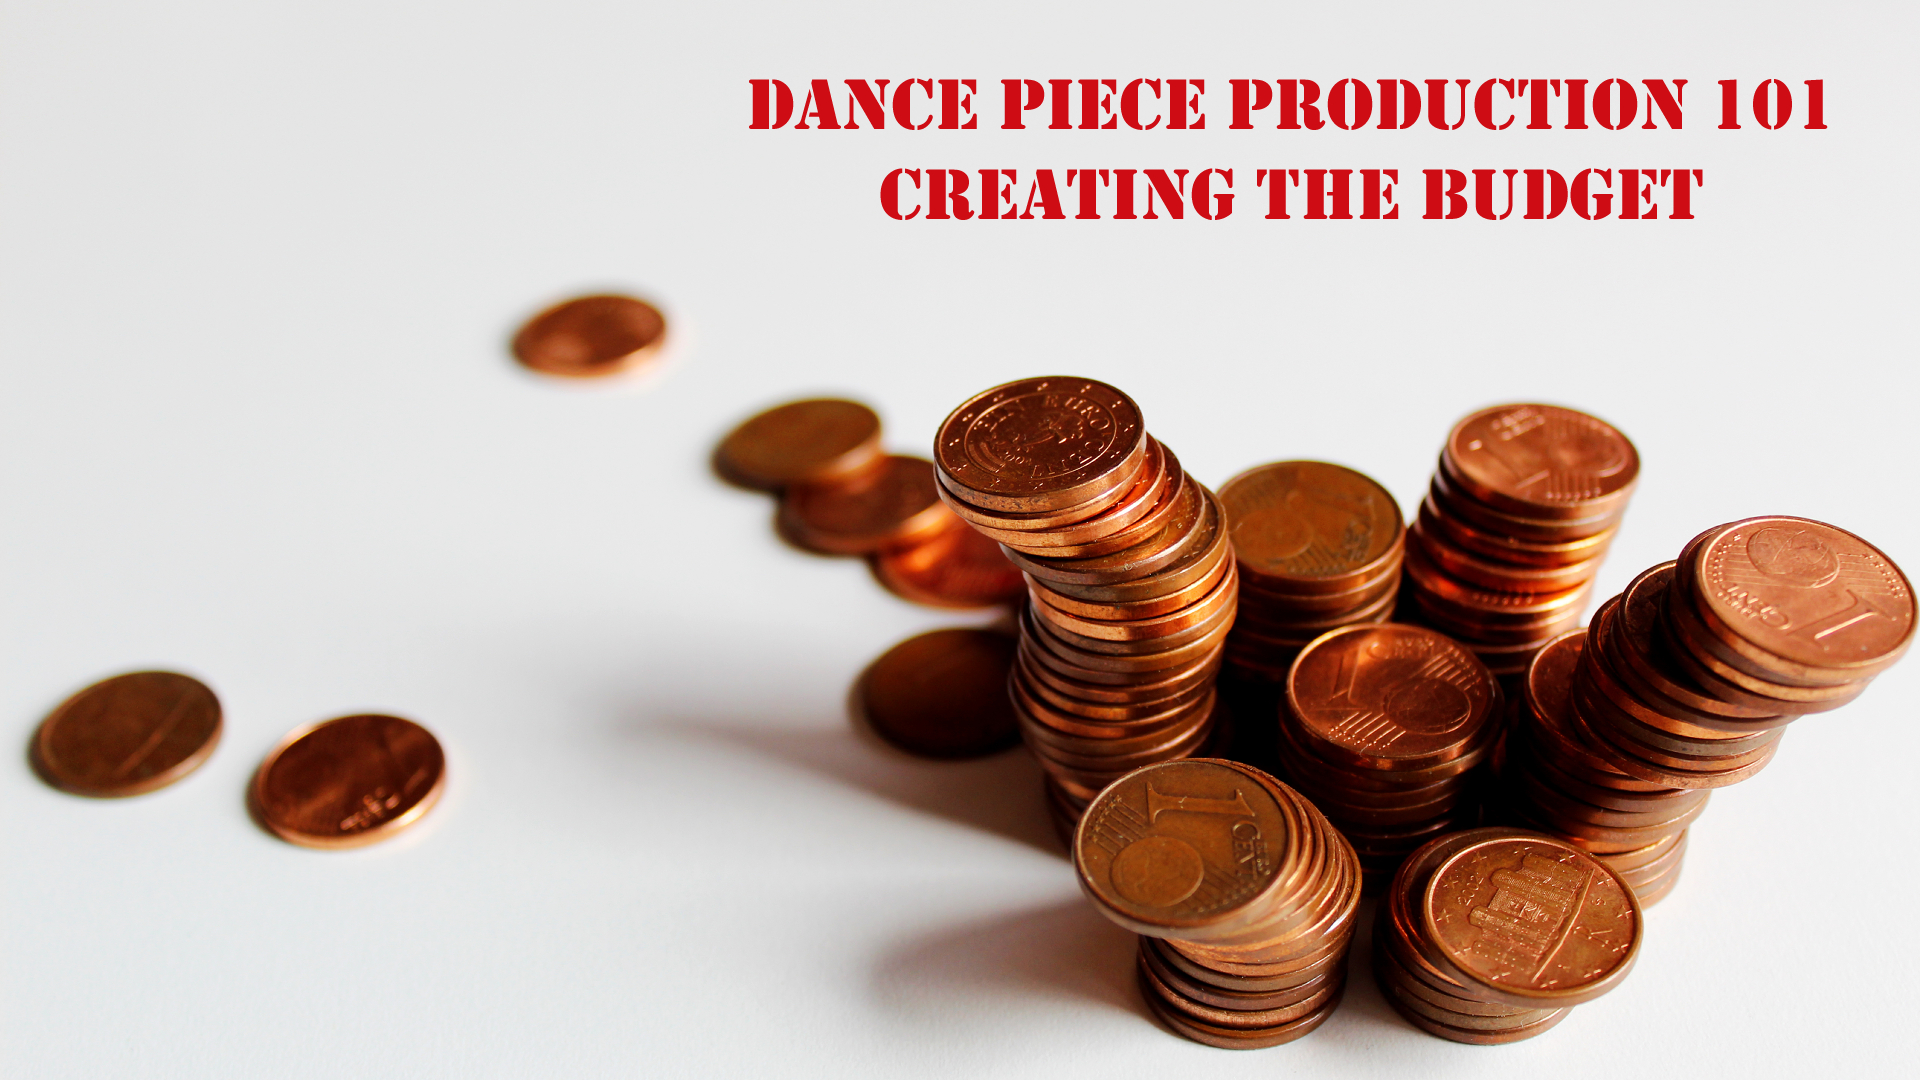 How to create the budget for your dance piece production